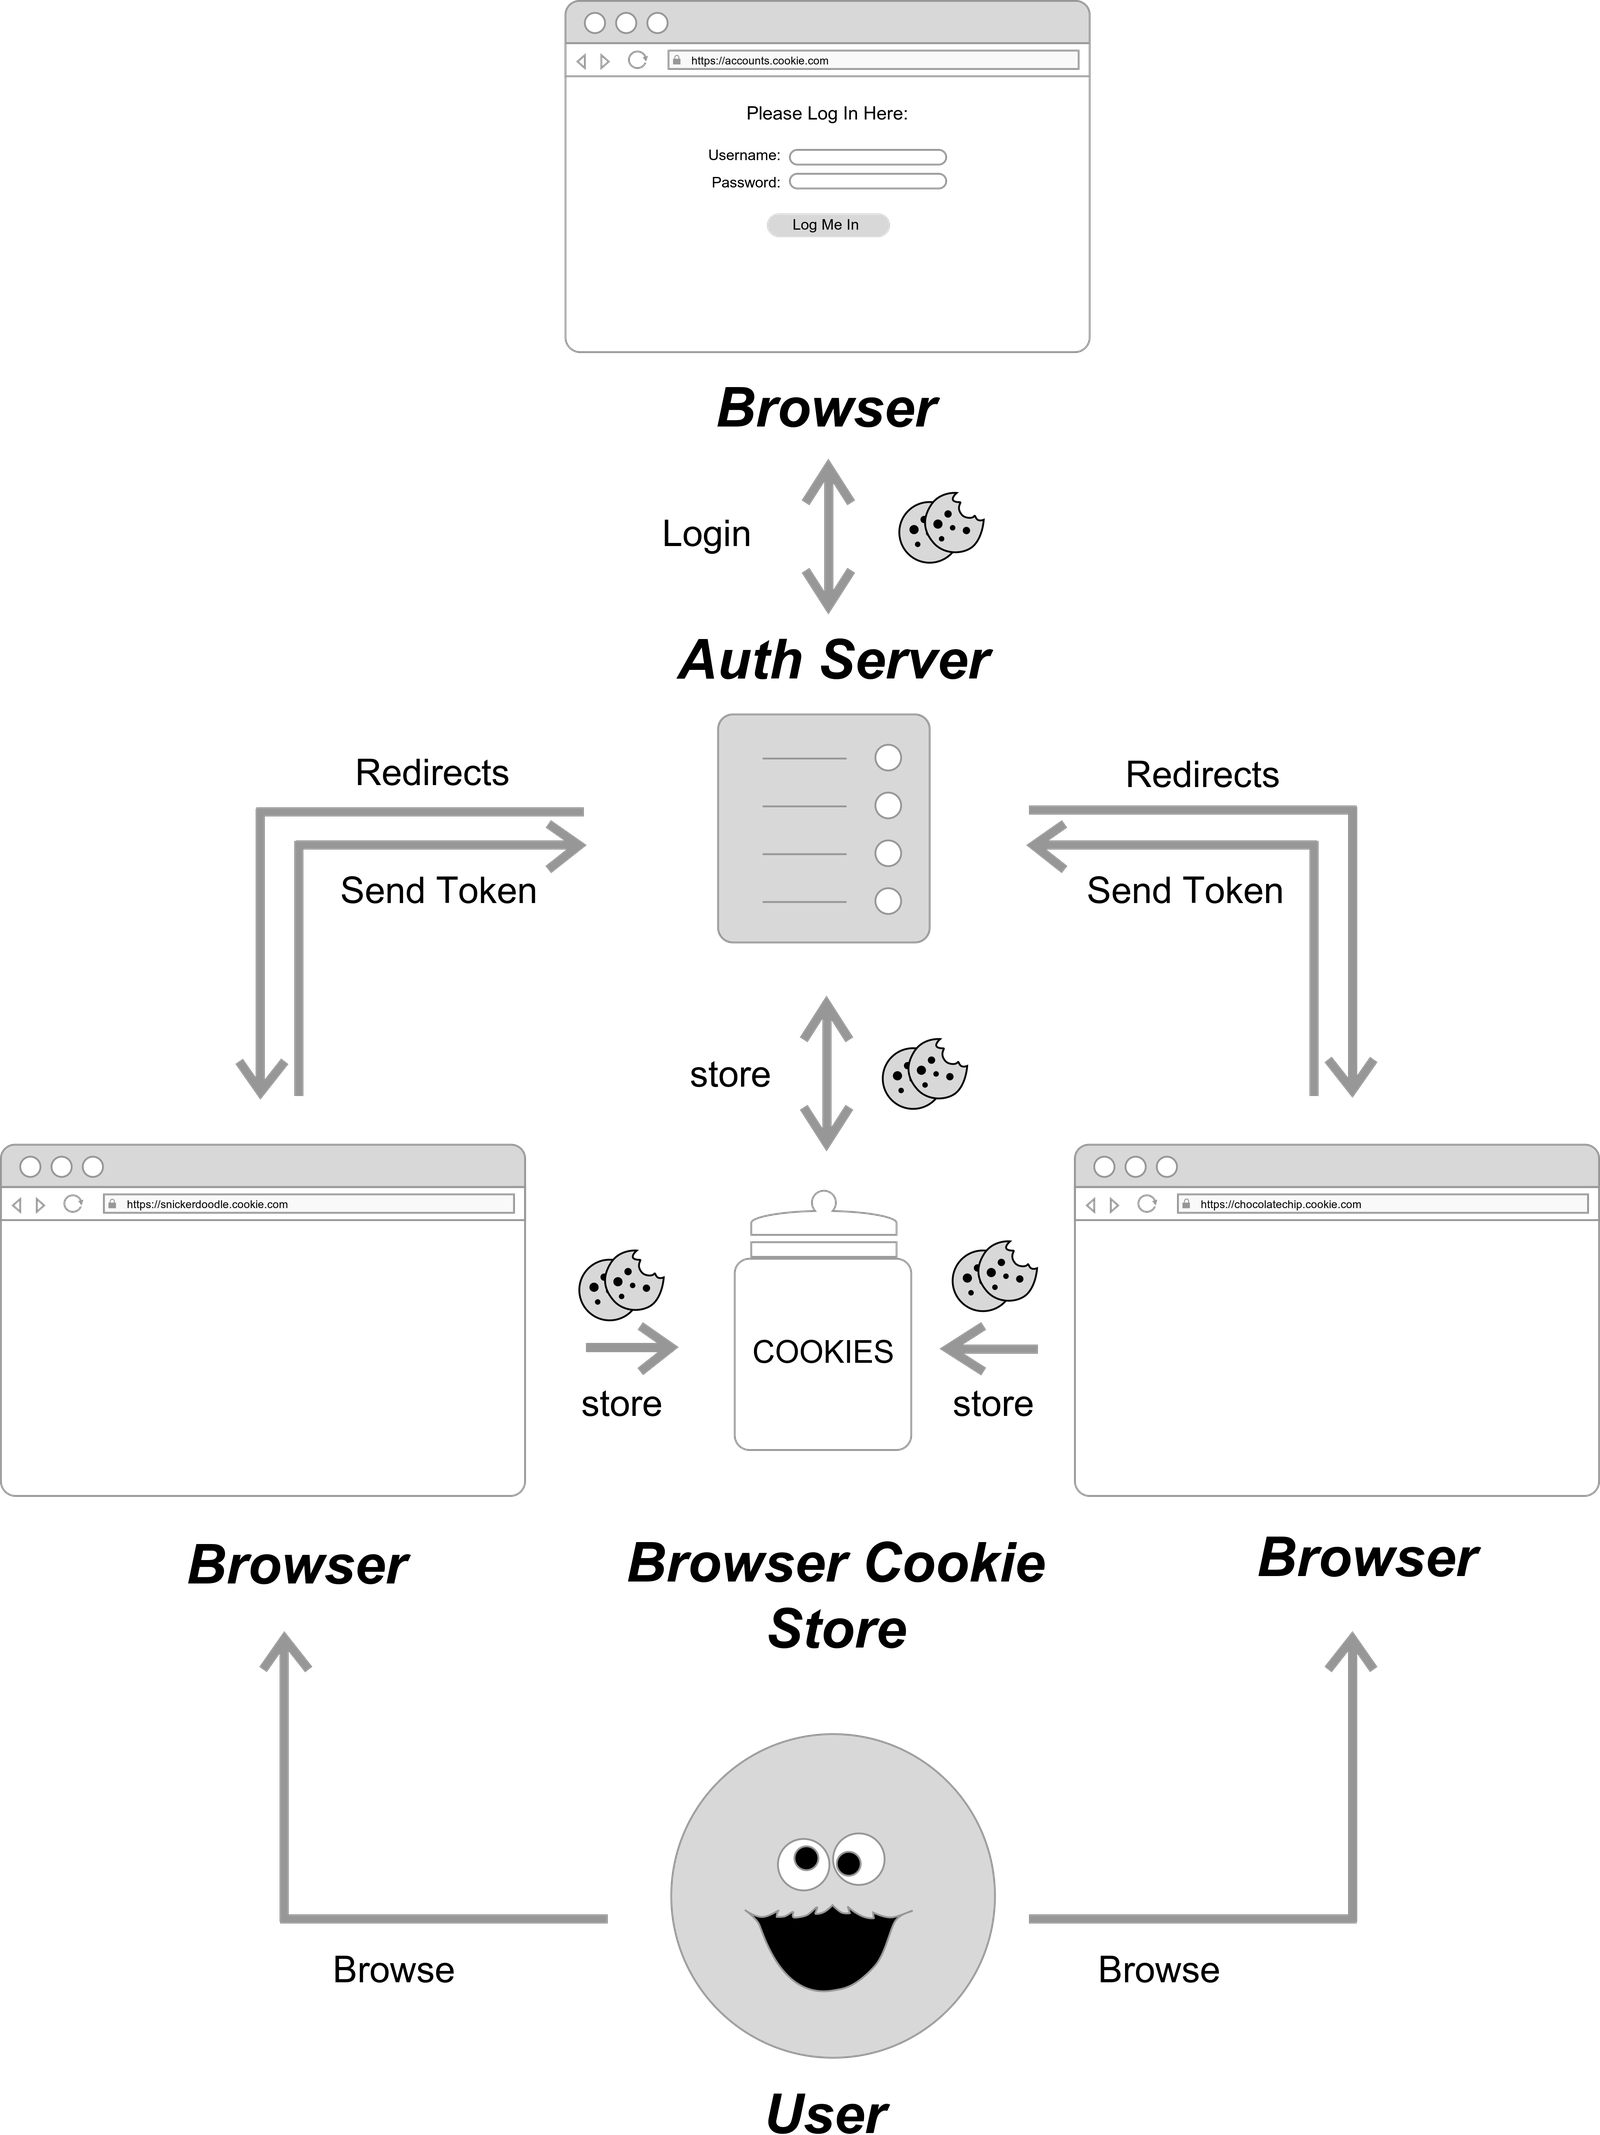 SSO Authentication Flow Diagram